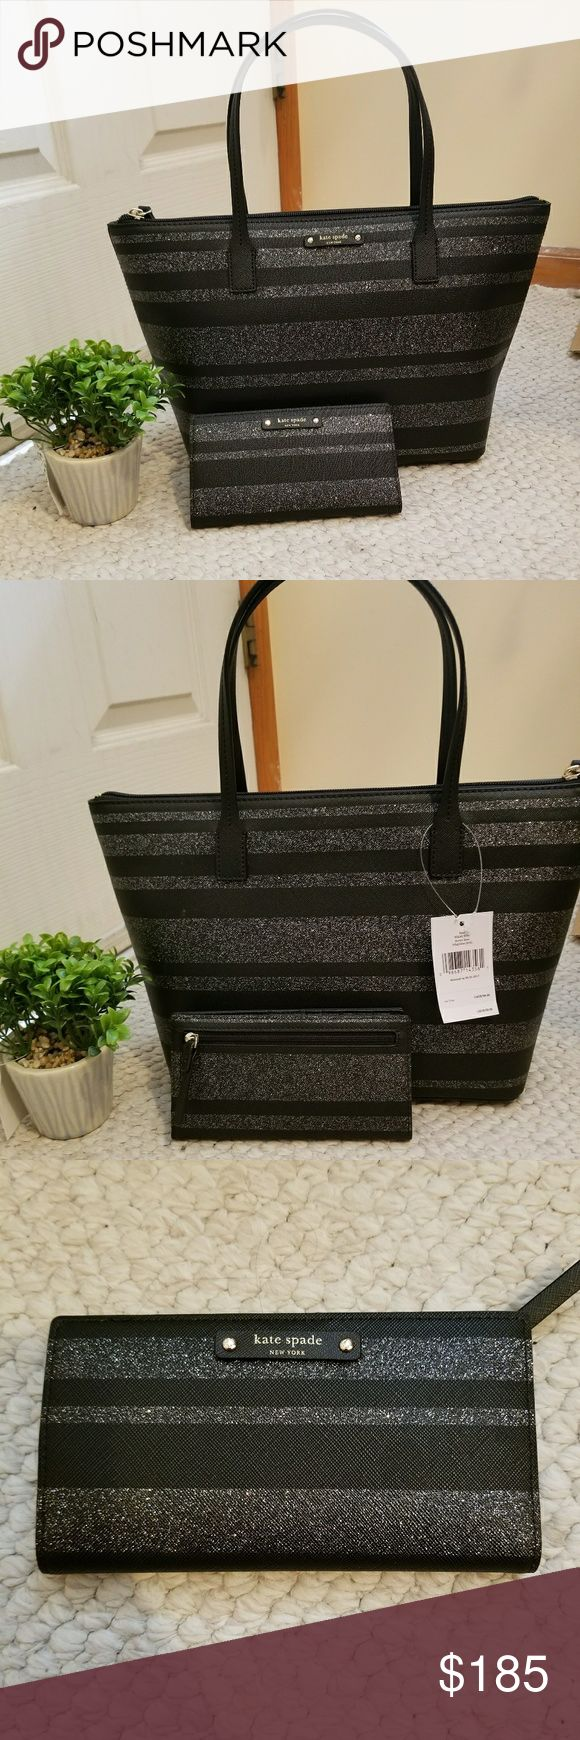 """Kate Spade Hani Lane Black Glitter Set Brand new with tags. Kate Spade Tote and Kate Spade Stacy Wallet  Beautiful saffiano style PVC tote in black with horizontal glitter stripes  Flat bottom  Dual flat leather handles with 6"""" drop  Interior:Fully lined in Kate Spade custom fabric 1 zipped pocket with leather pull along interior rear 2 slit pockets along interior front wall  Measurements: 15"""" w x 9"""" h x 5"""" d  About wallet Medium wallet with snap closure 12 credit card slots, ID slot and…"""